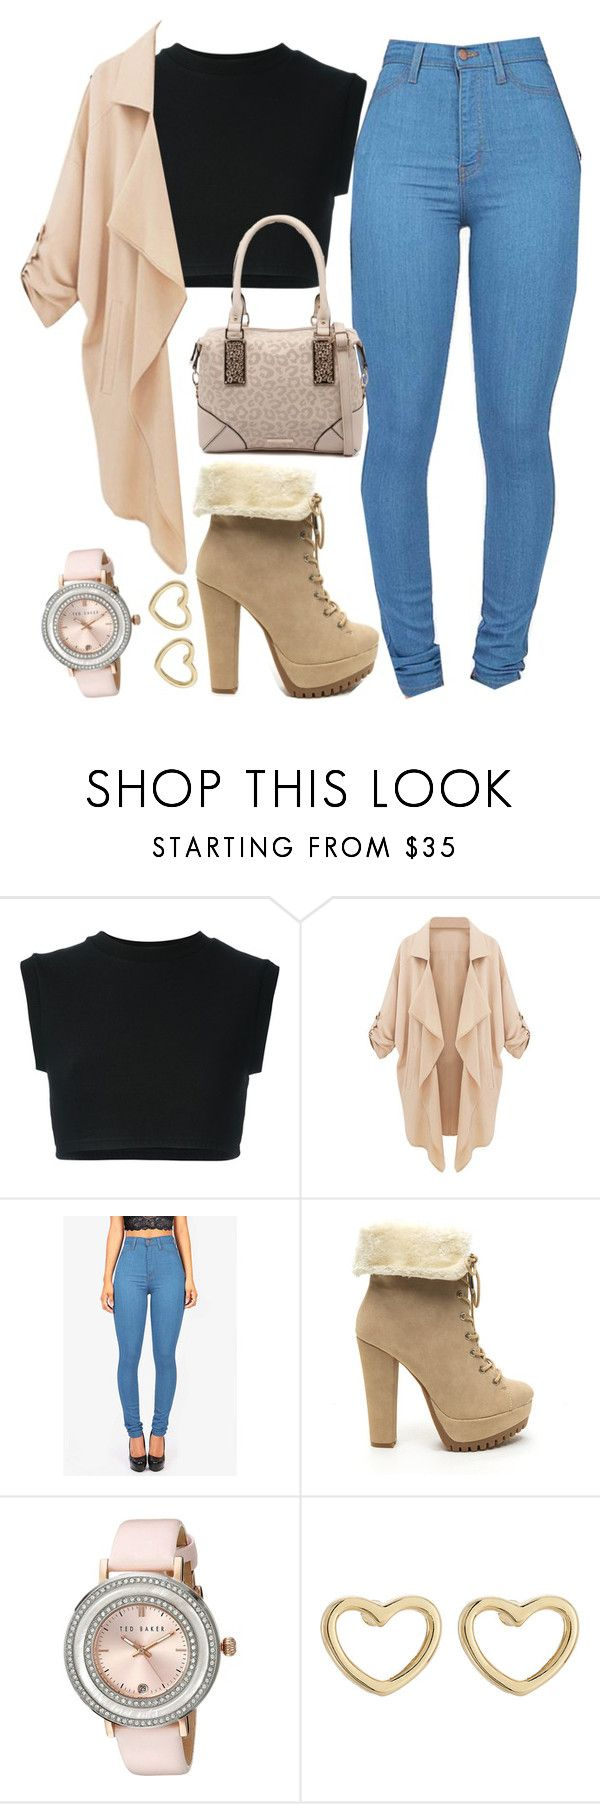 """Not On My Level, Not Even Close"" by avamancuso ❤ liked on Polyvore featuring adidas Originals, Ted Baker, Marc by Marc Jacobs and Kardashian Kollection"